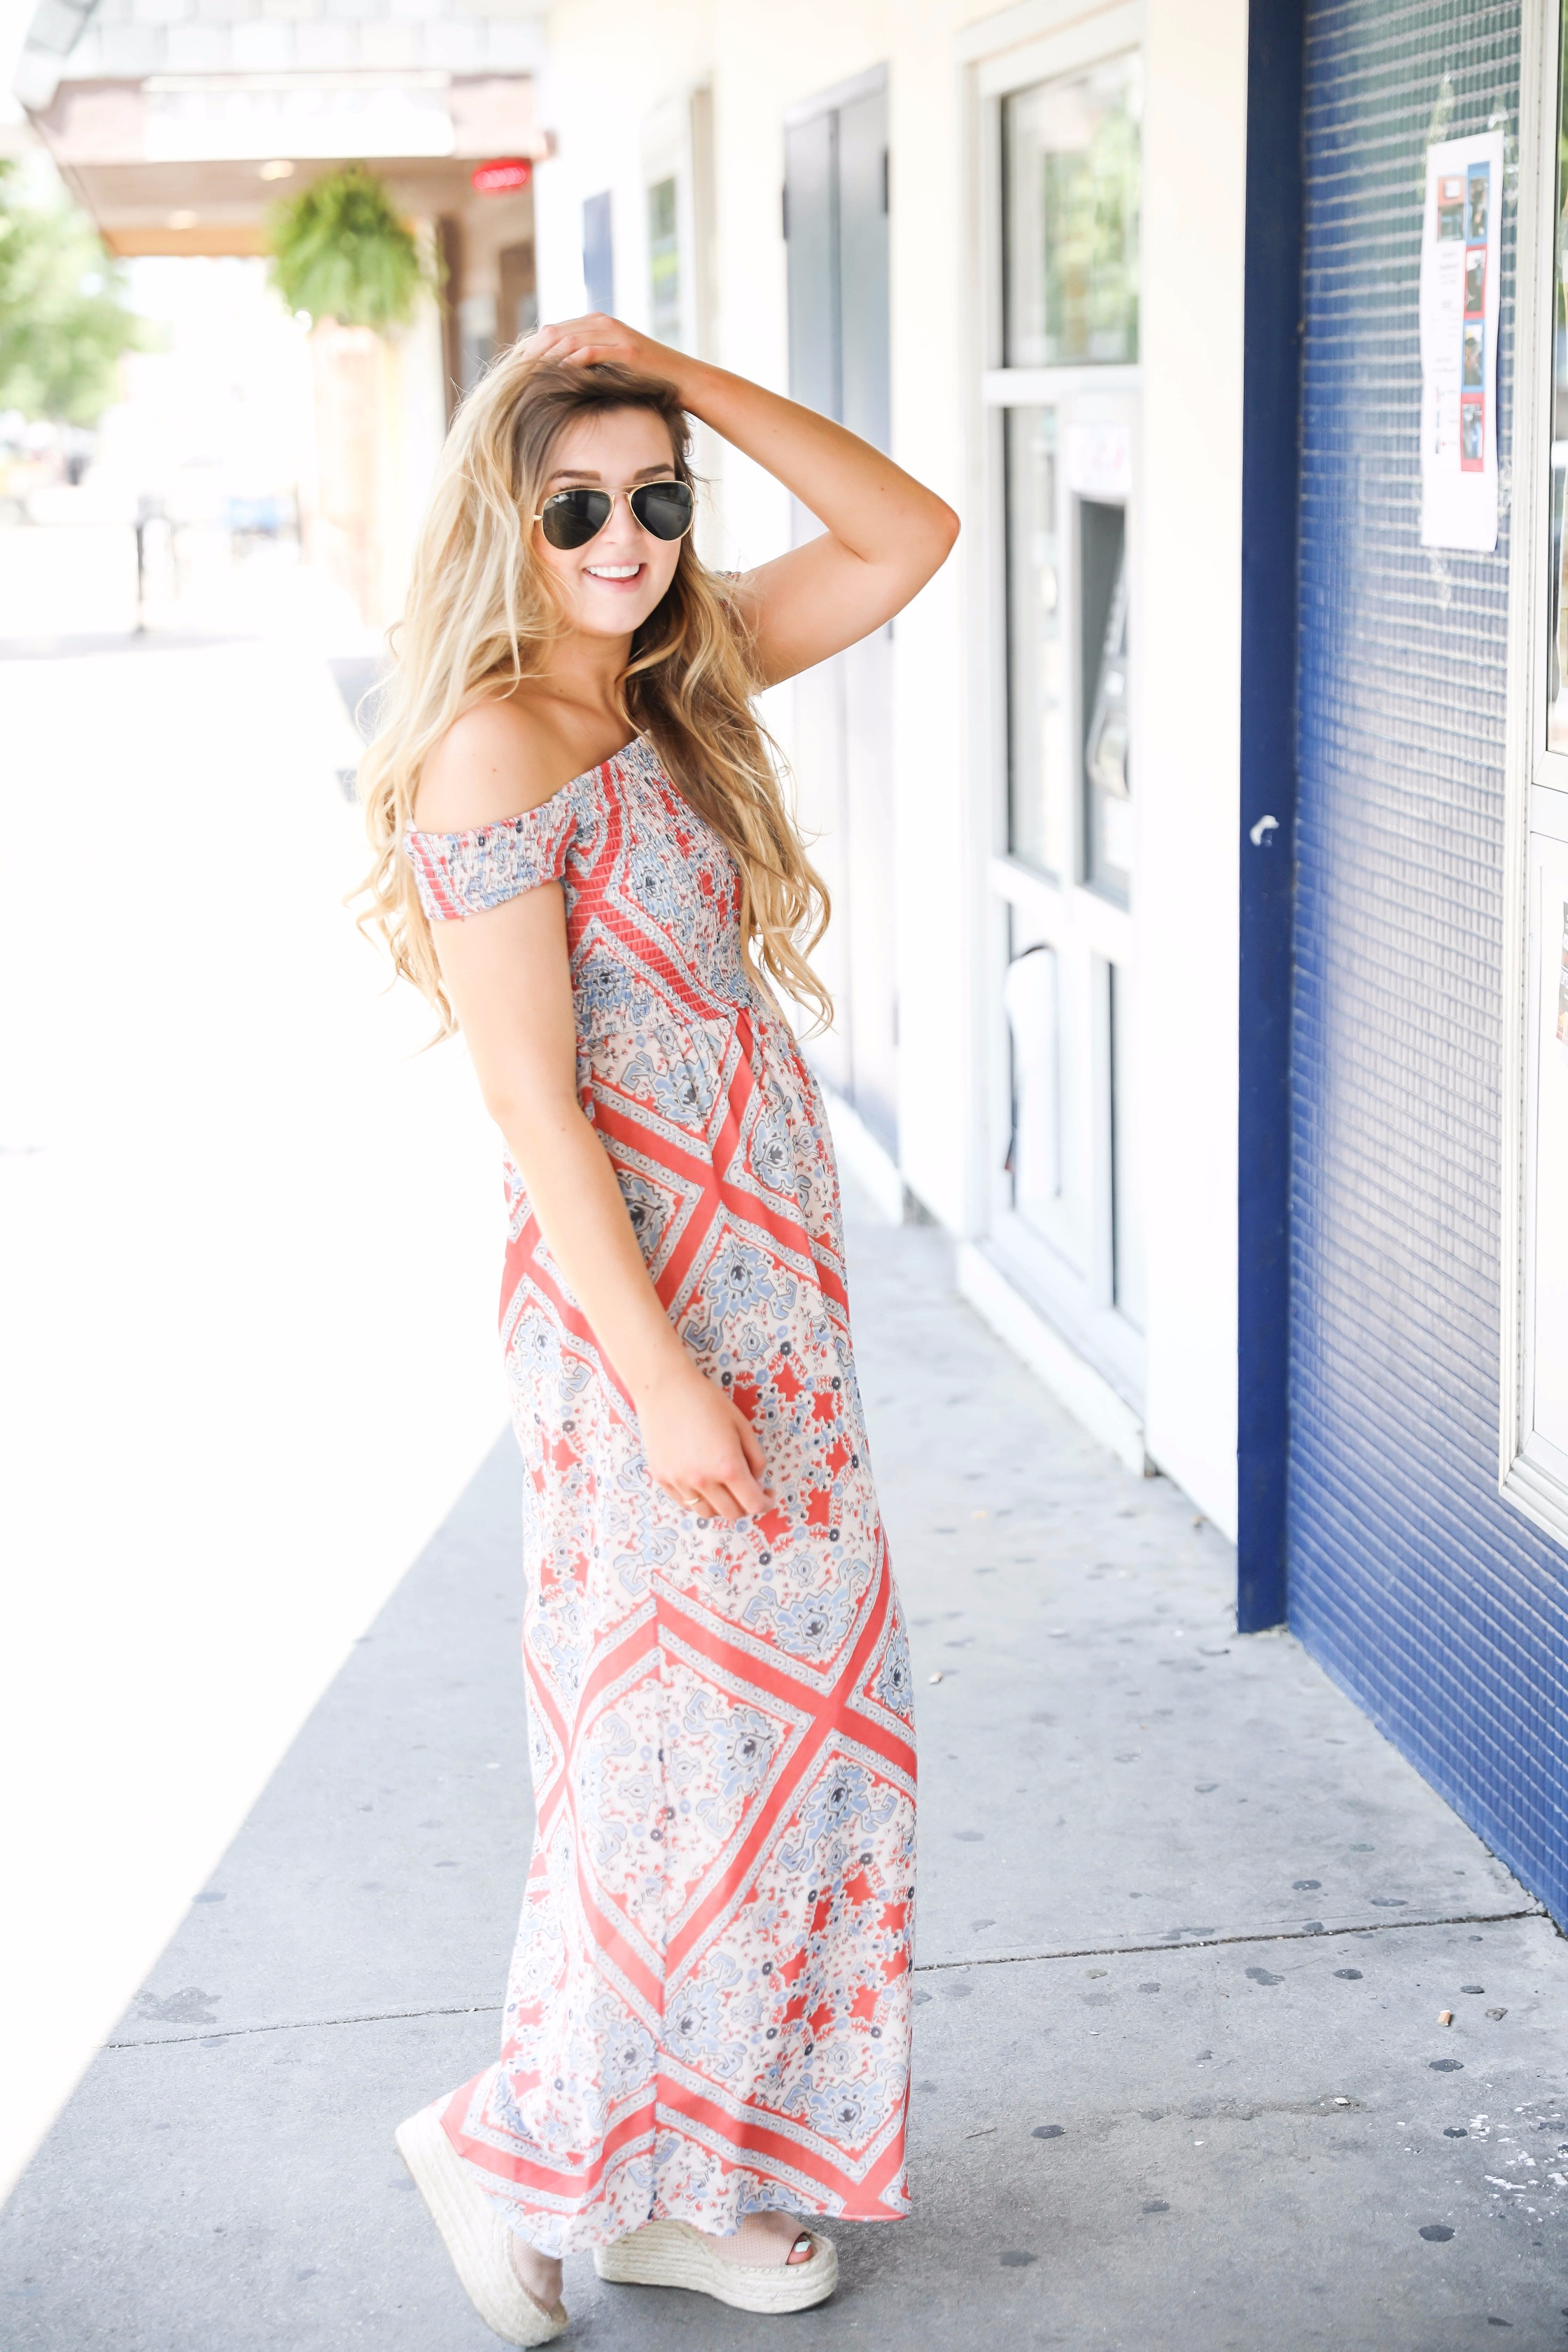 The cutest flowy off the shoulder dress. I love the dun pattern and the coral, orange and blue is so unique! Maxi dresses are my favorite. on fashion blog daily dose of charm by lauren lindmark